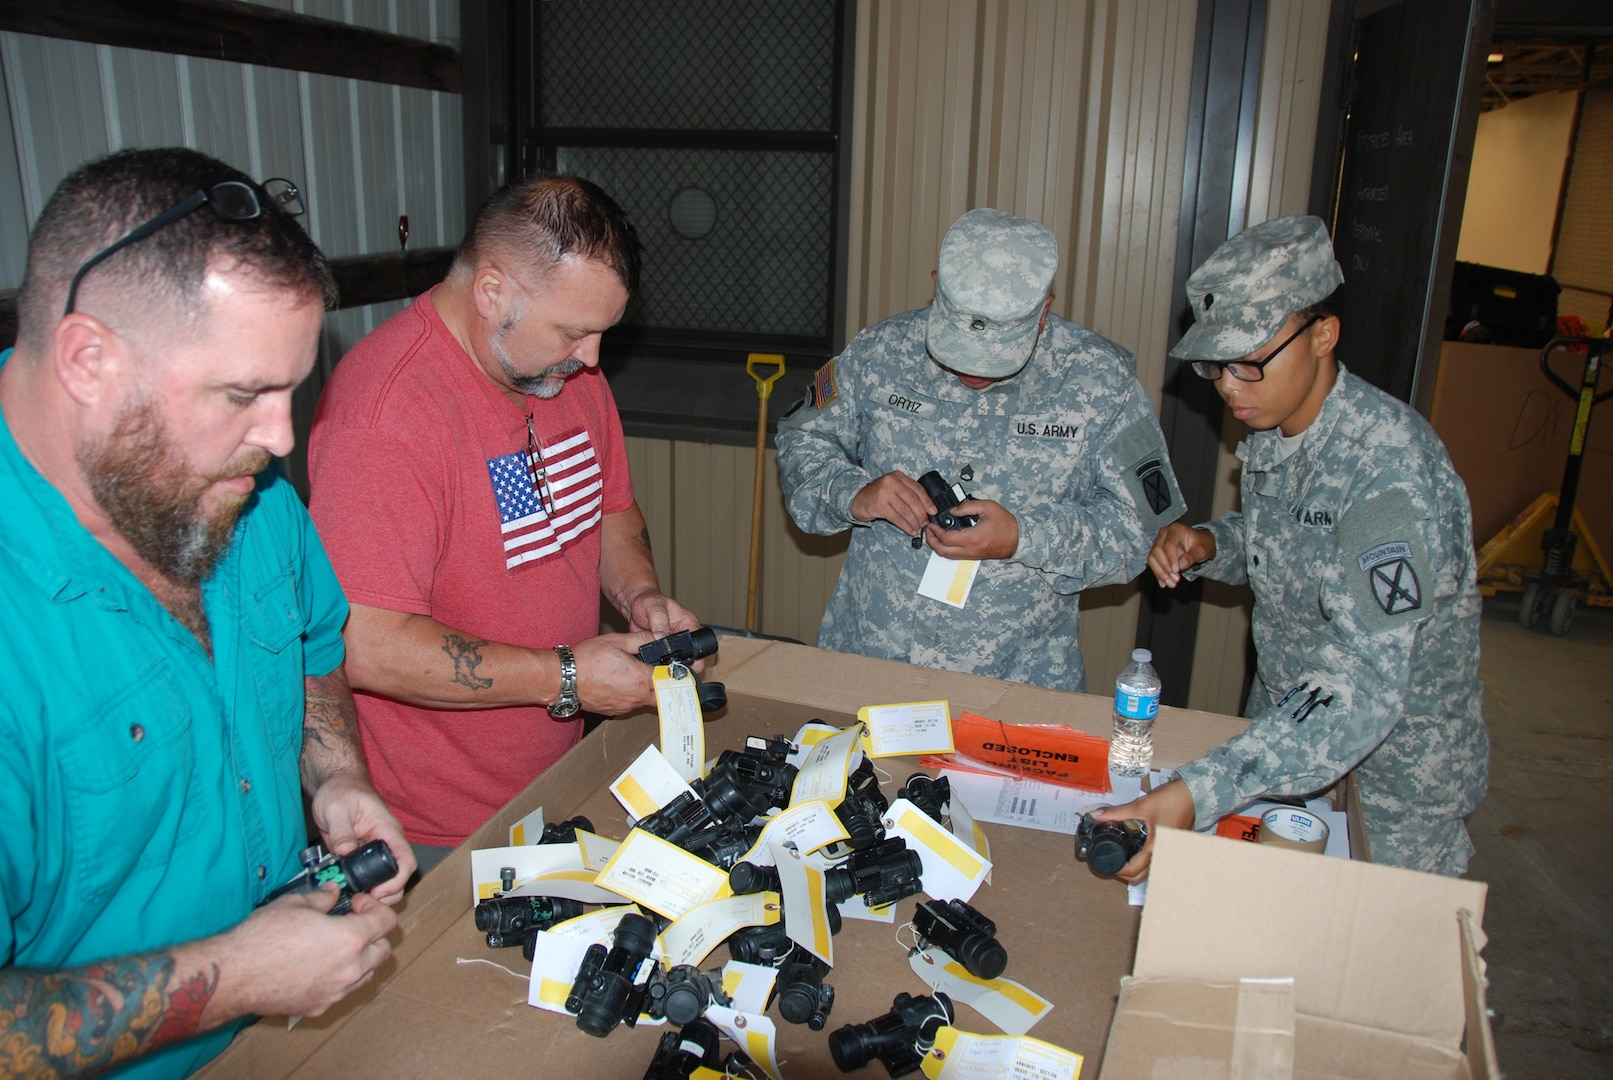 Two soldiers and two civilians checking over excess equipment ready for turn-in.